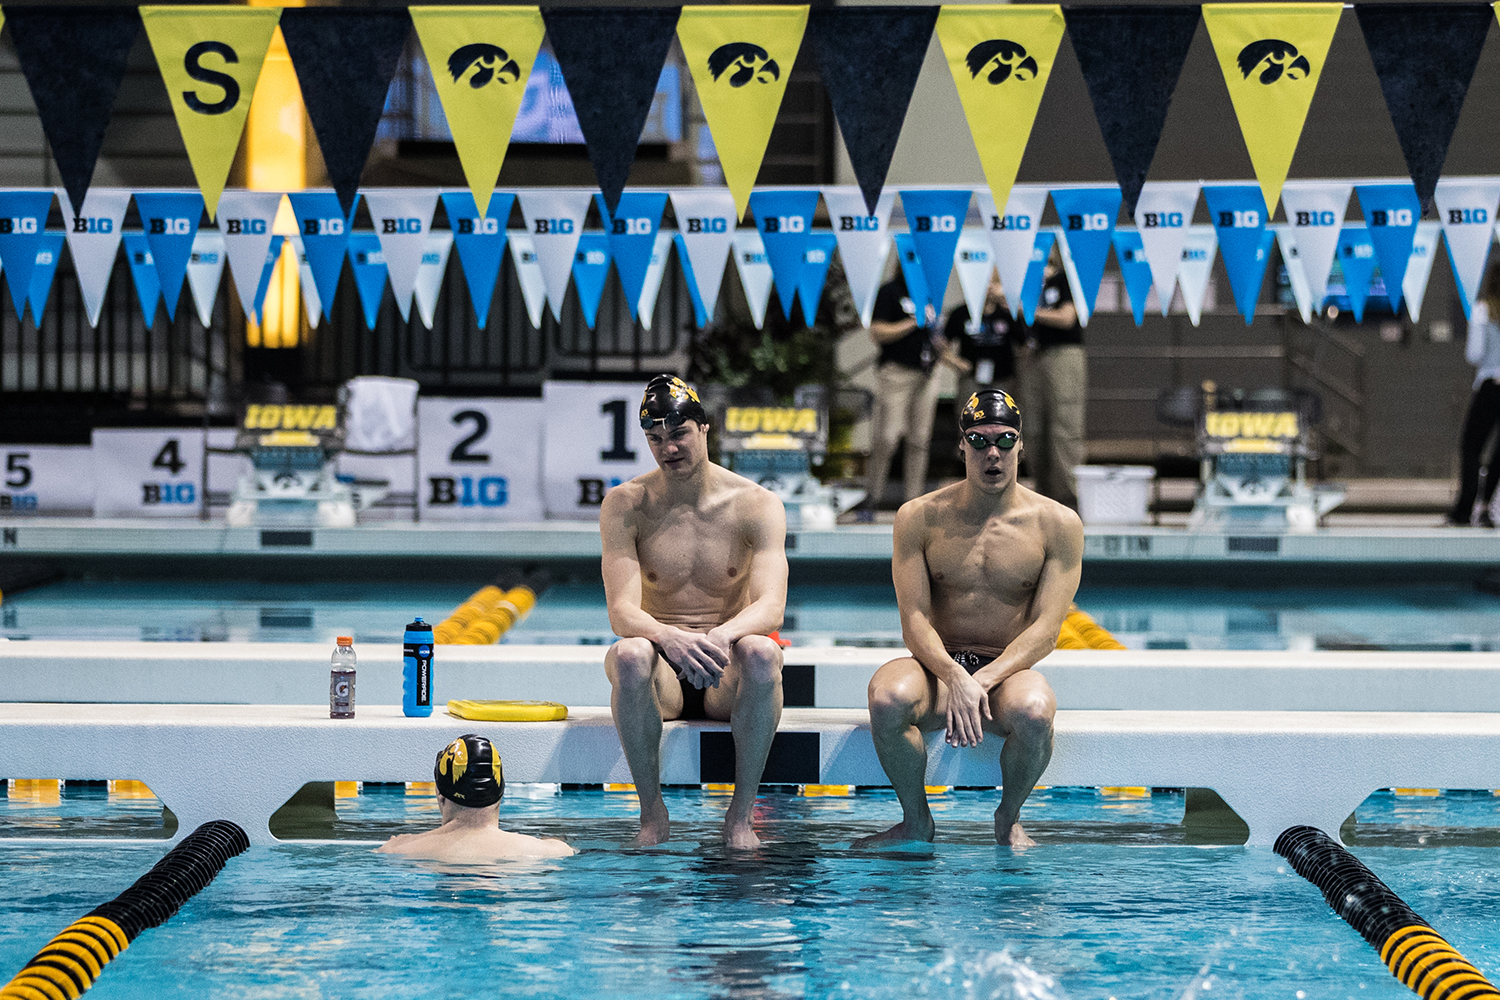 Iowa+swimmers+warm+up+during+the+first+day+of+the+2019+Big+Ten+Men%27s+Swimming+and+Diving+Championships+at+the+CRWC+on+Wednesday%2C+February+27%2C+2019.+